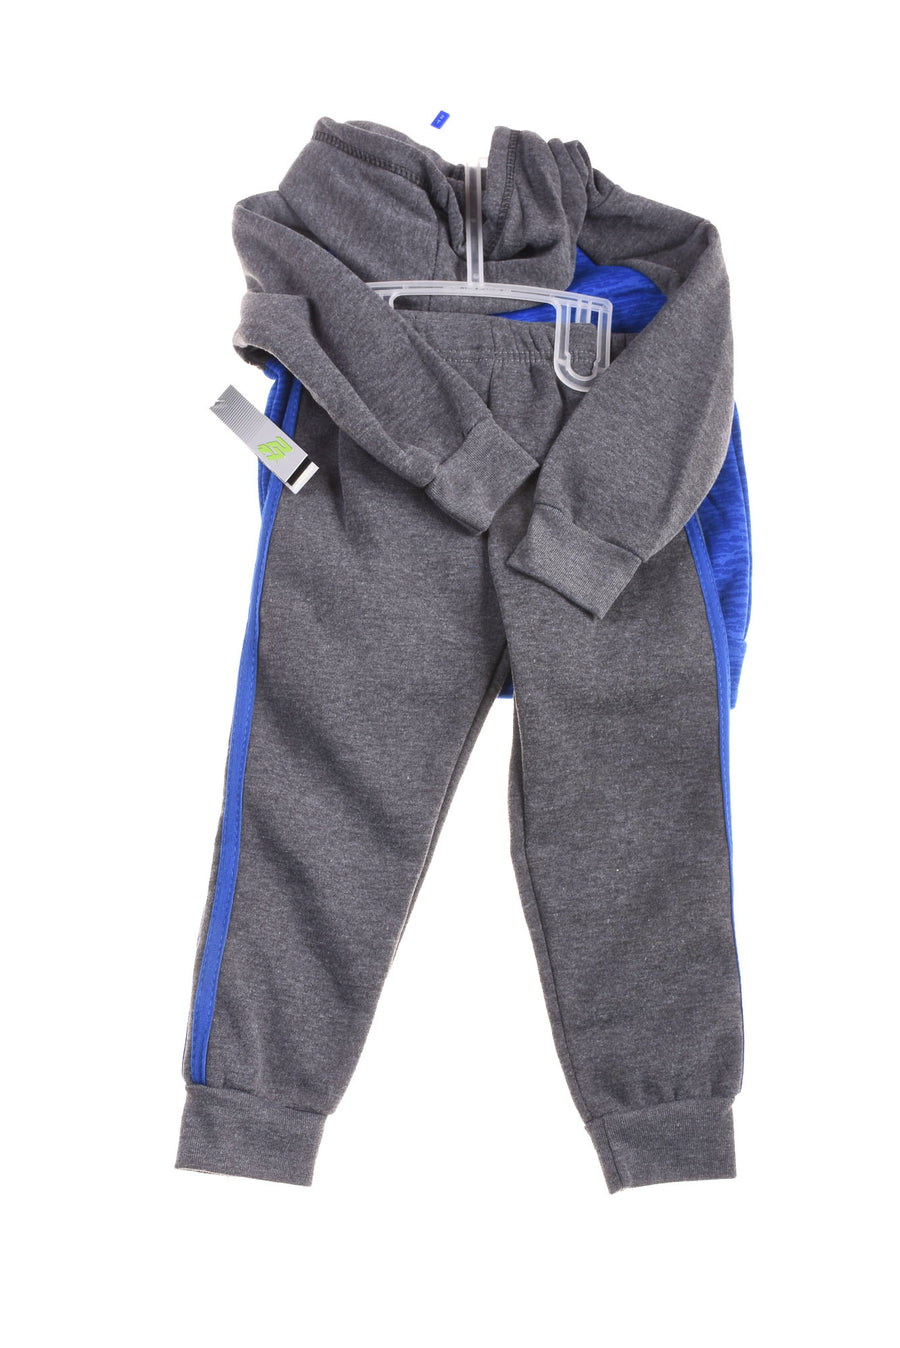 Toddler Boy's Outift By Pro Athlete